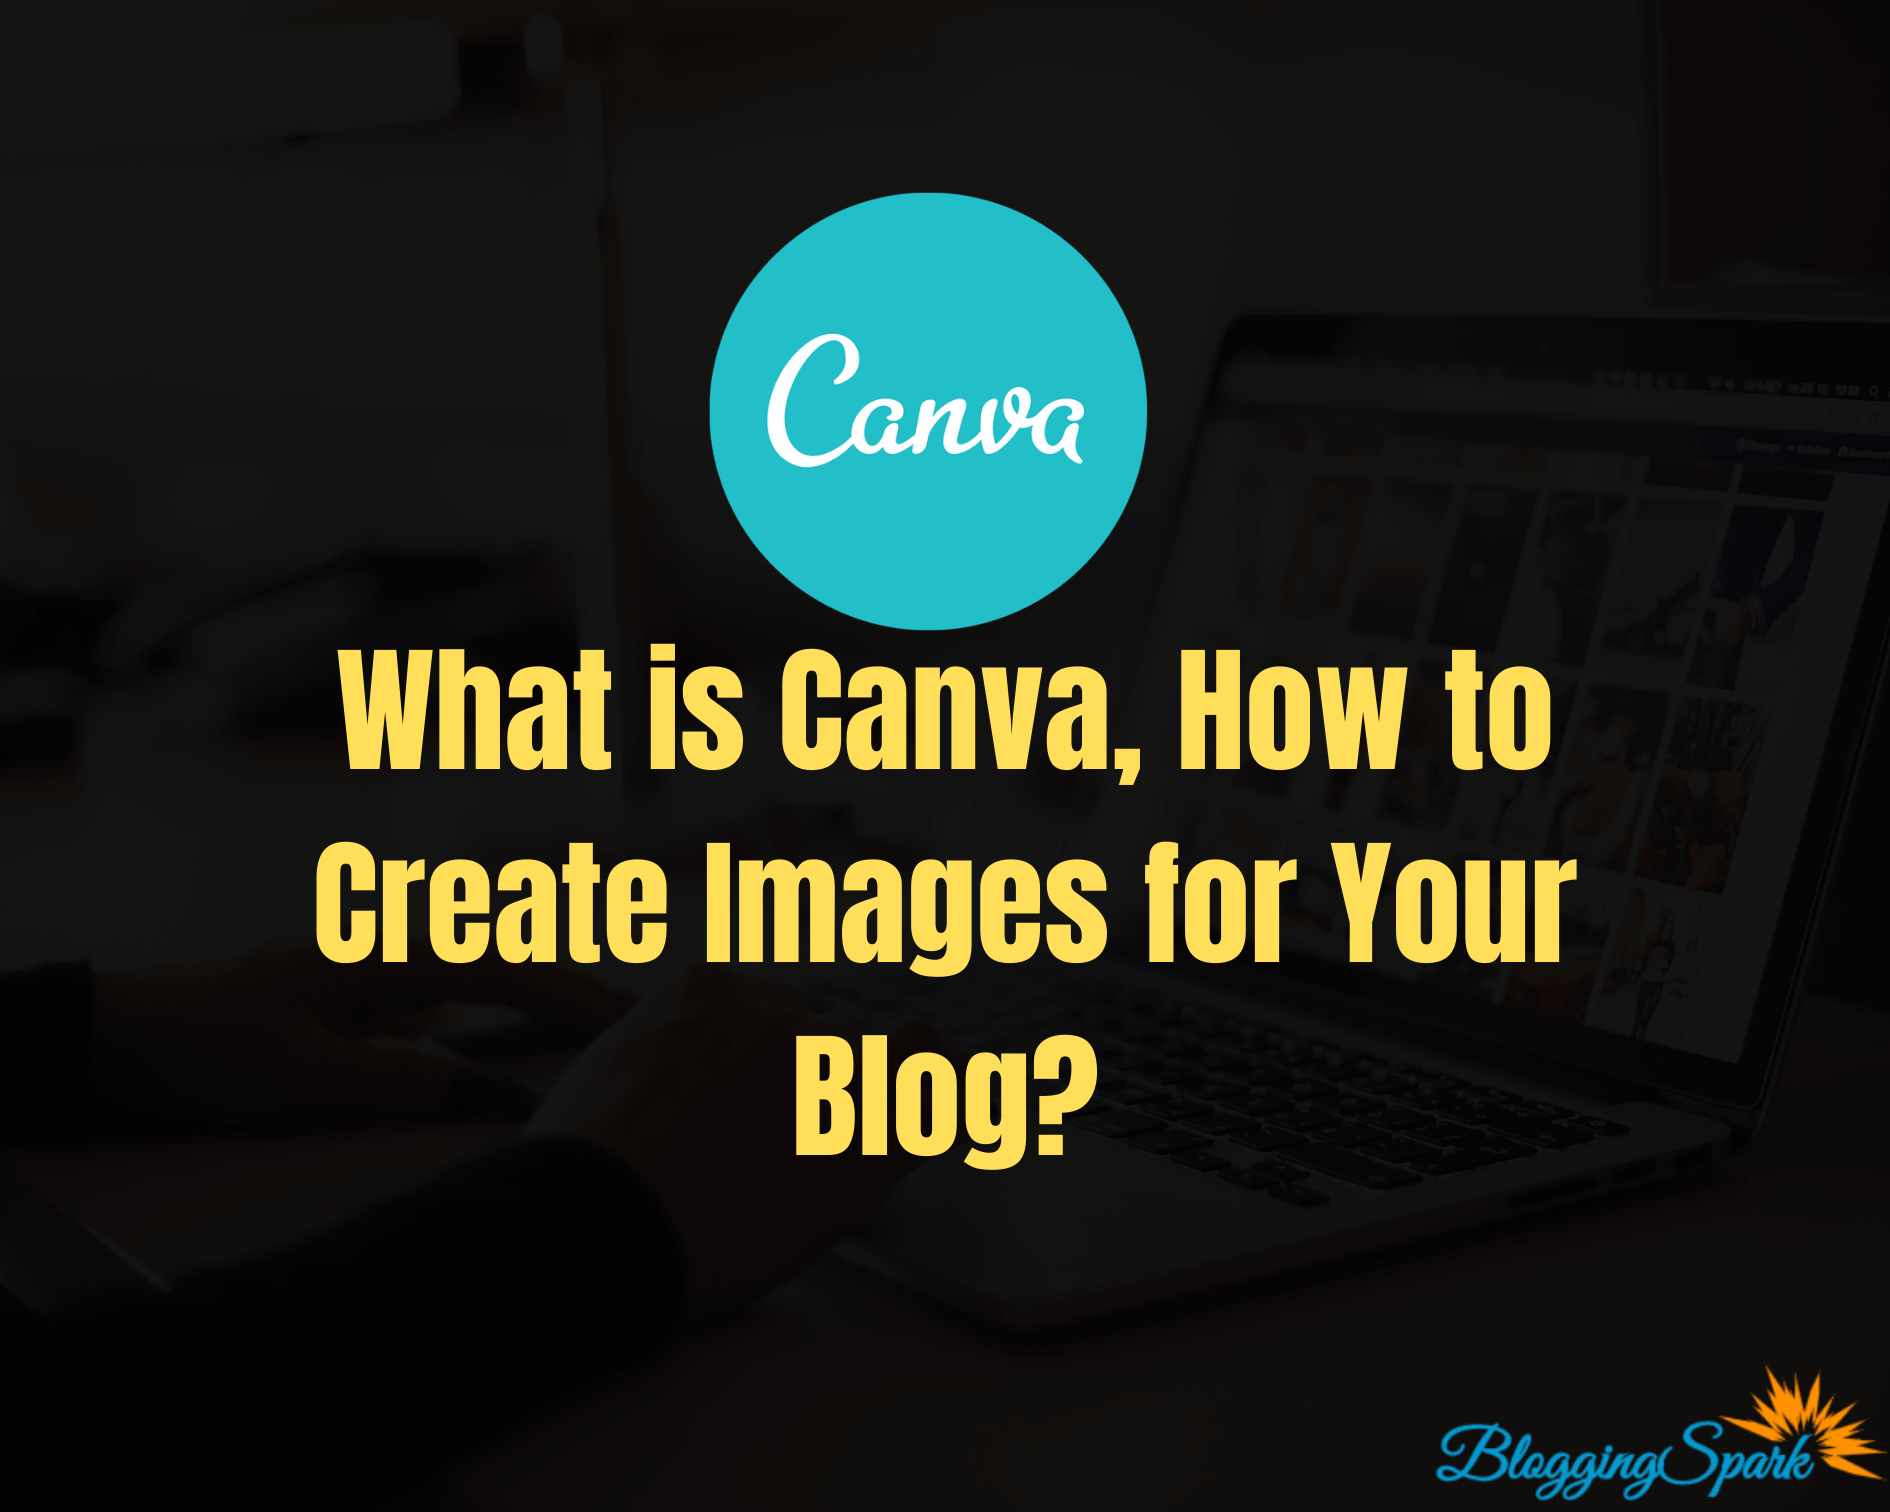 What is Canva, How to Create Images for Your Blog?